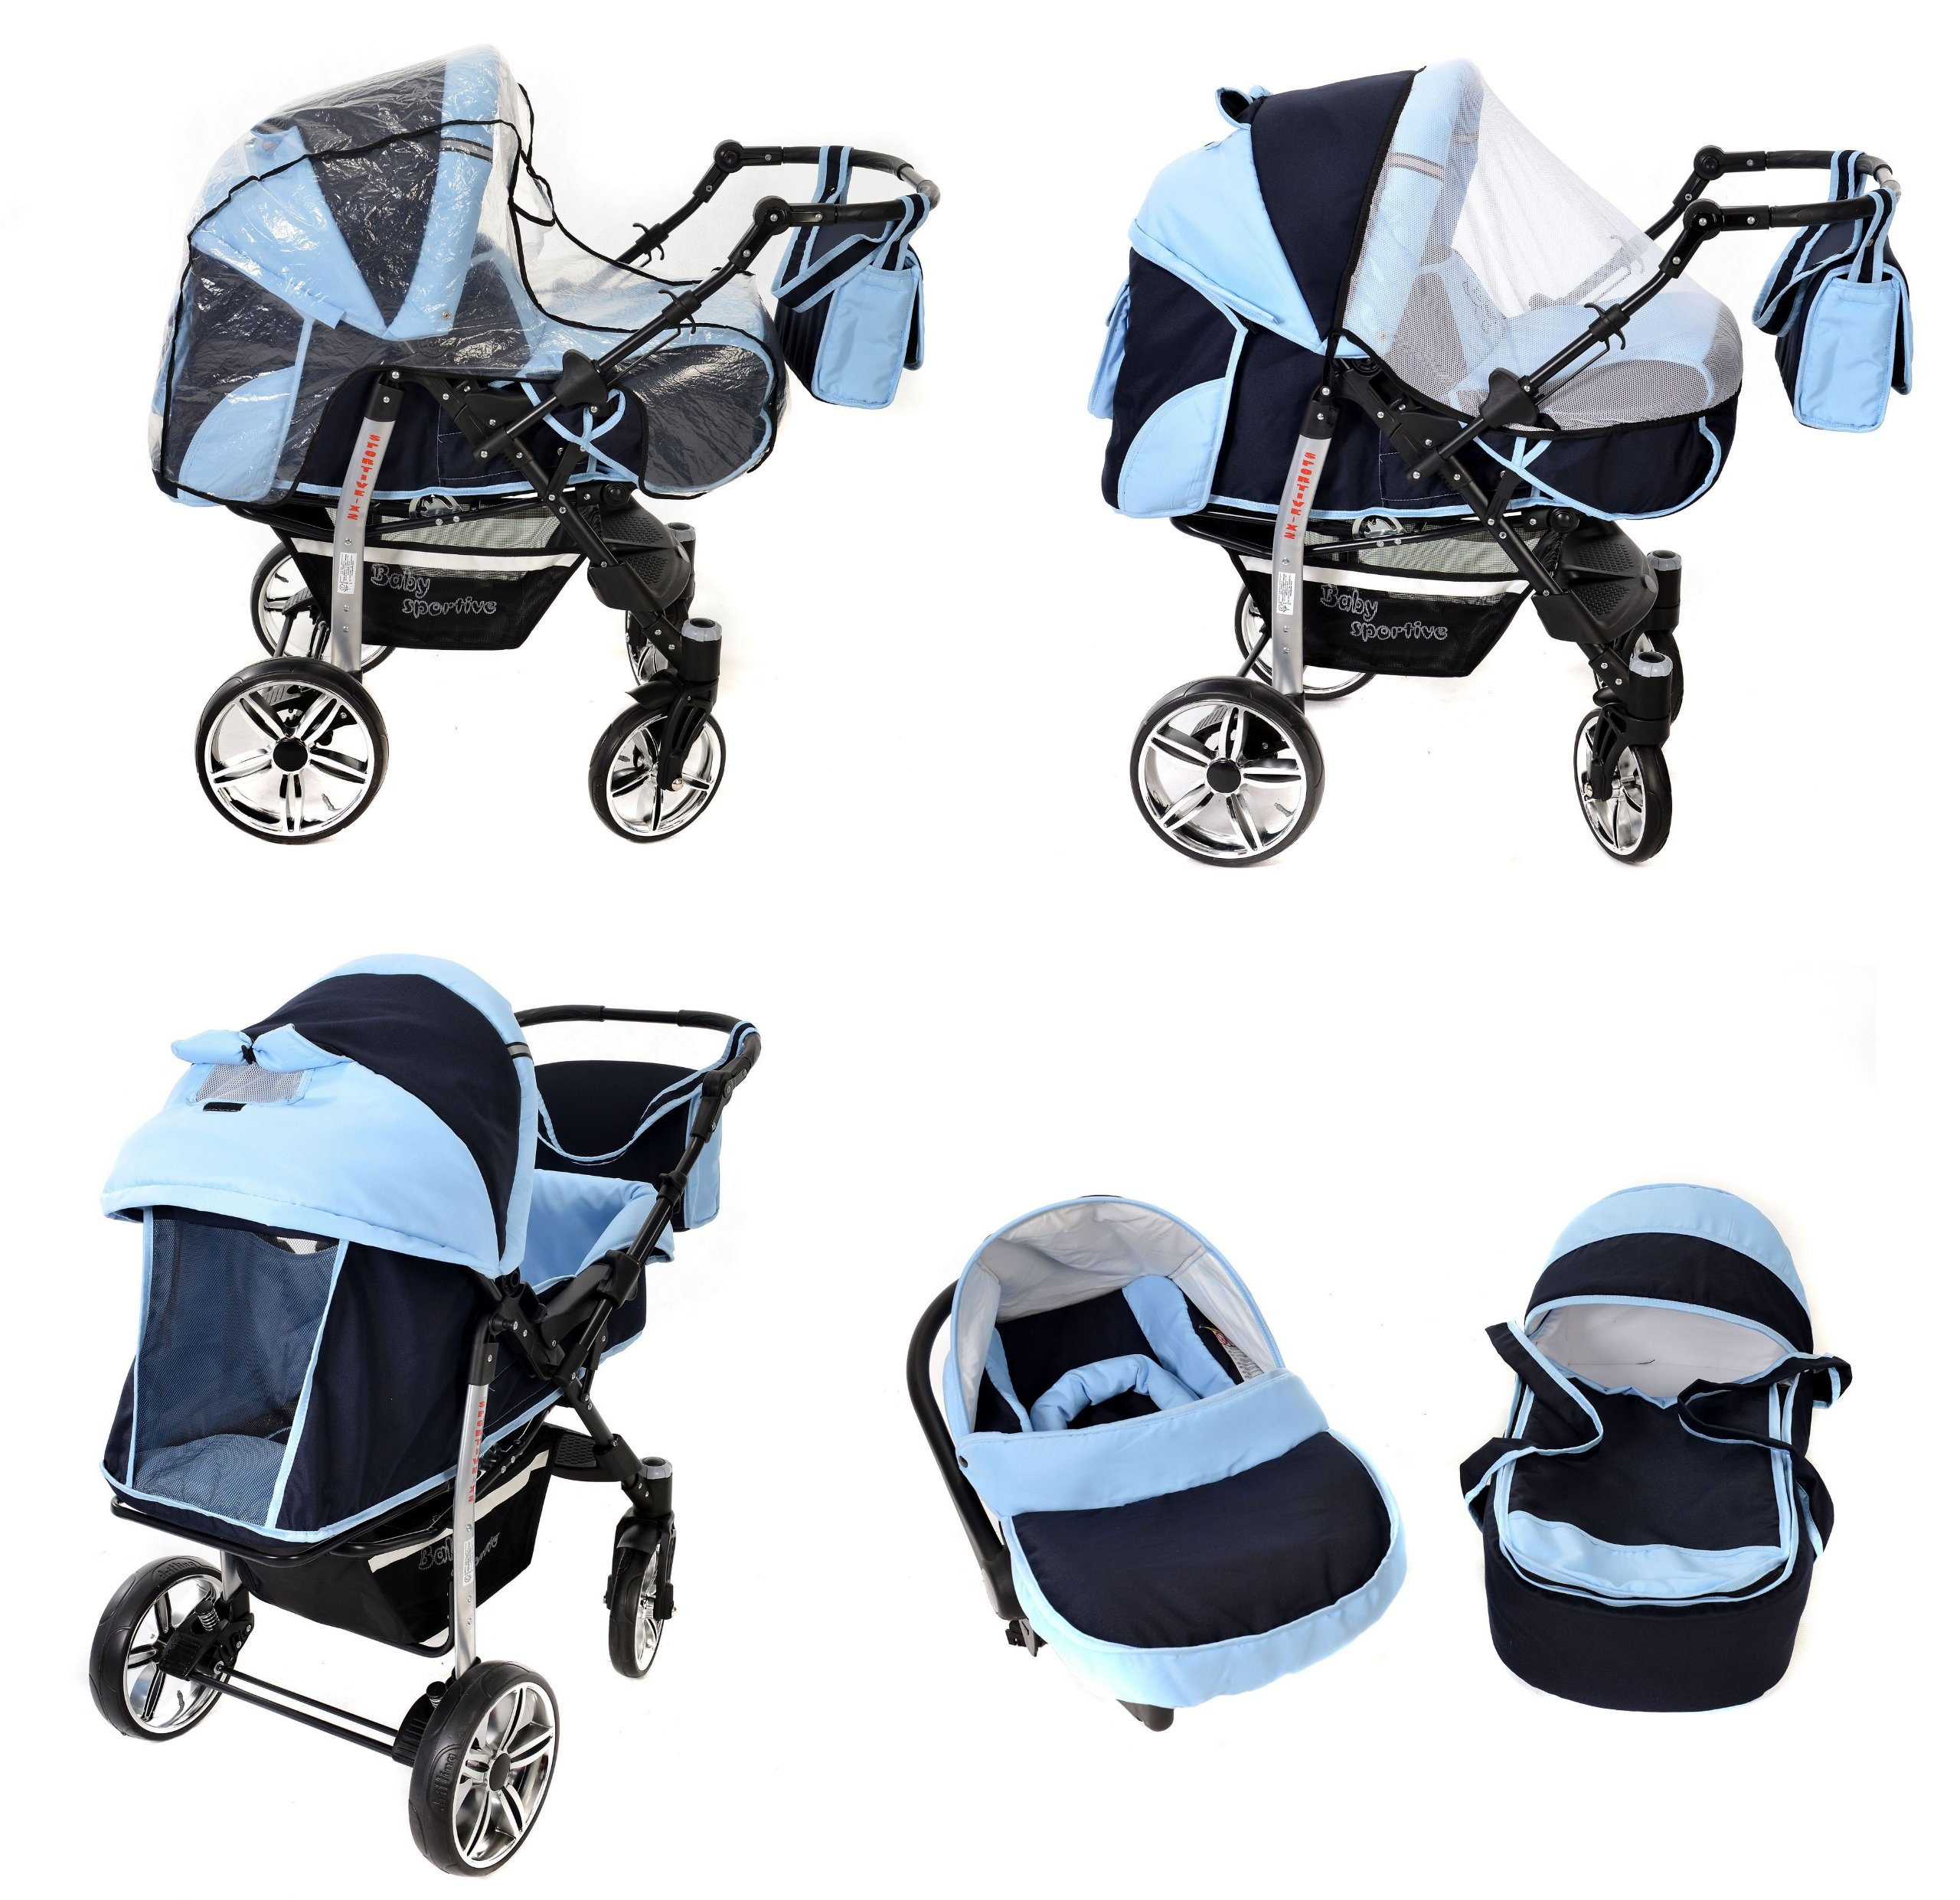 Sportive X2, 3-in-1 Travel System incl. Baby Pram with Swivel Wheels, Car Seat, Pushchair & Accessories (3-in-1 Travel System, Navy-Blue & Blue)  3 in 1 Travel System All in One Set - Pram, Car Carrier Seat and Sport Buggy + Accessories: carrier bag, rain protection, mosquito net, changing mat, removable bottle holder and removable tray for your child's bits and pieces Suitable from birth, Easy Quick Folding System; Large storage basket; Turnable handle bar that allows to face or rear the drive direction; Quick release rear wheels for easy cleaning after muddy walks Front lockable 360o swivel wheels for manoeuvrability , Small sized when folded, fits into many small car trunks, Carry-cot with a removable hood, Reflective elements for better visibility 7